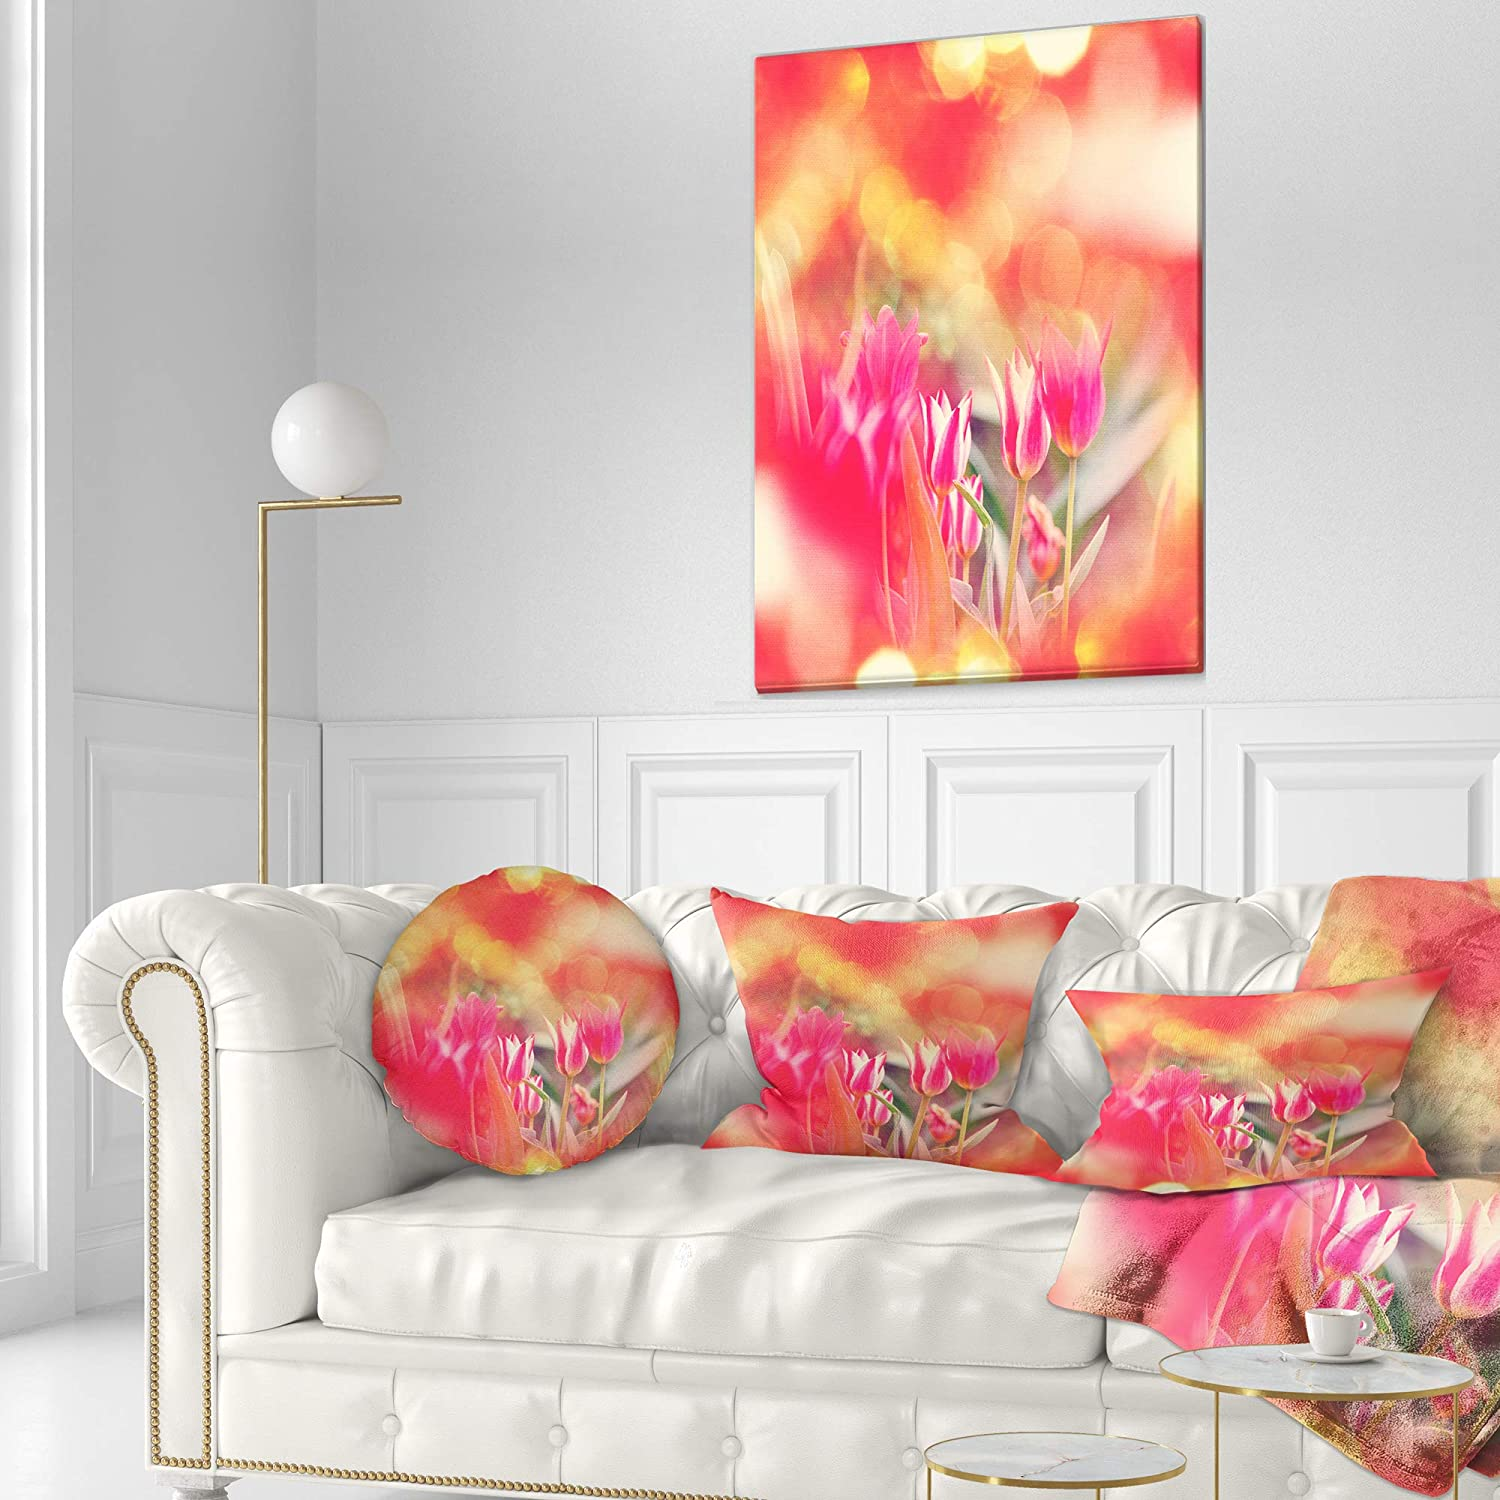 Sofa Throw Pillow 12 in x 20 in in Designart CU12467-12-20 Tulips on Abstract Red Background Floral Lumbar Cushion Cover for Living Room